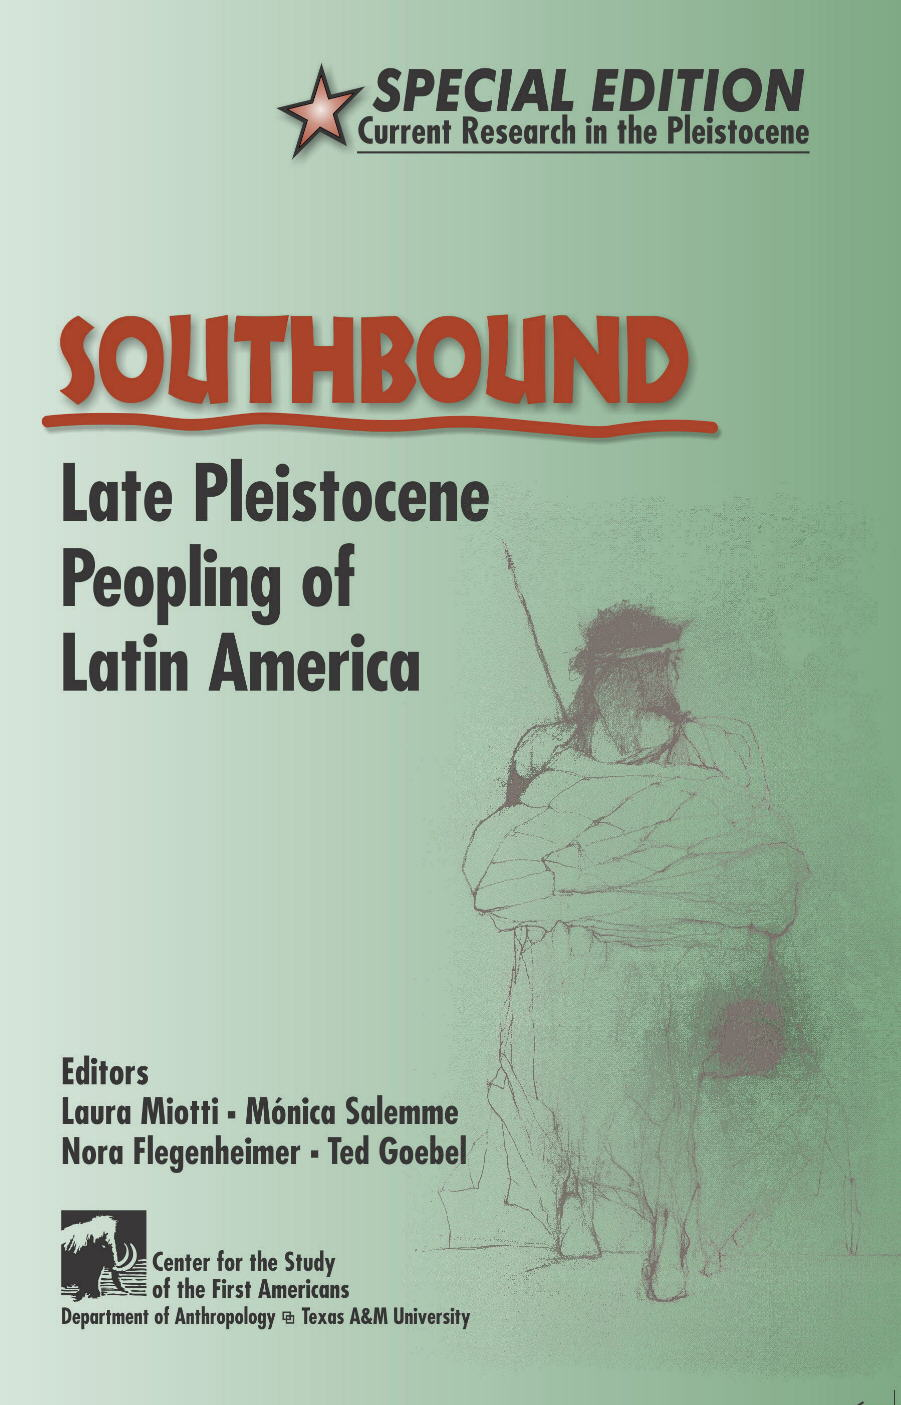 Southbound: Late Pleistocene Peopling of Latin America